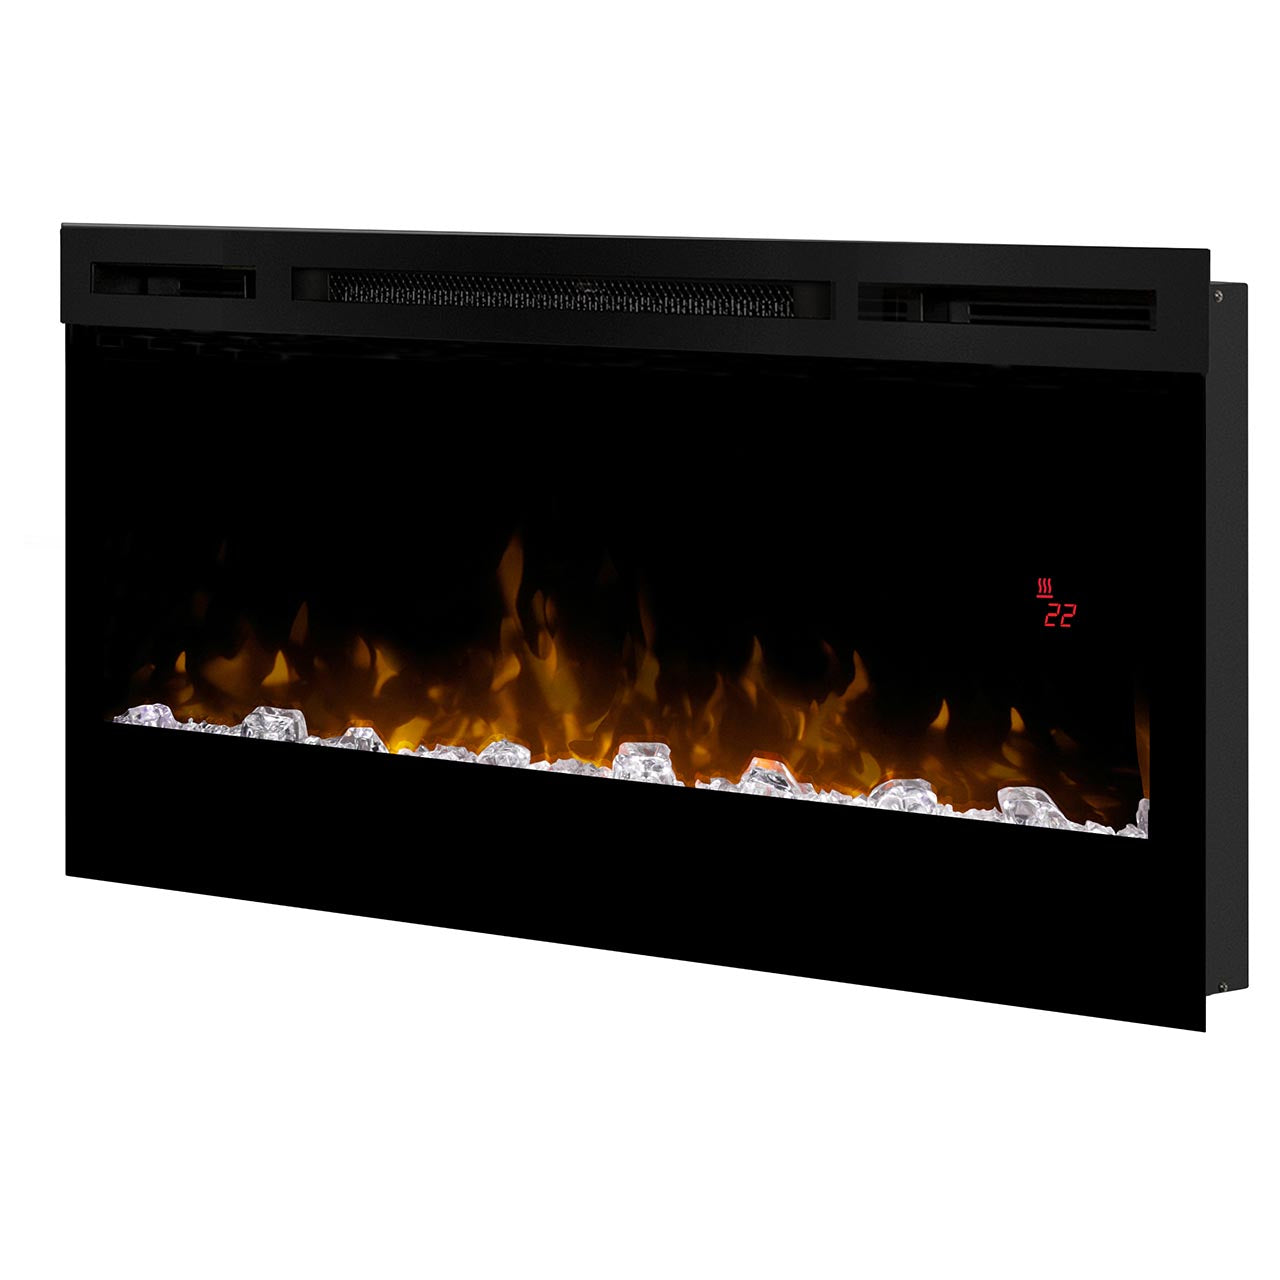 "Prism Series 34"" Linear Electric Fireplace"